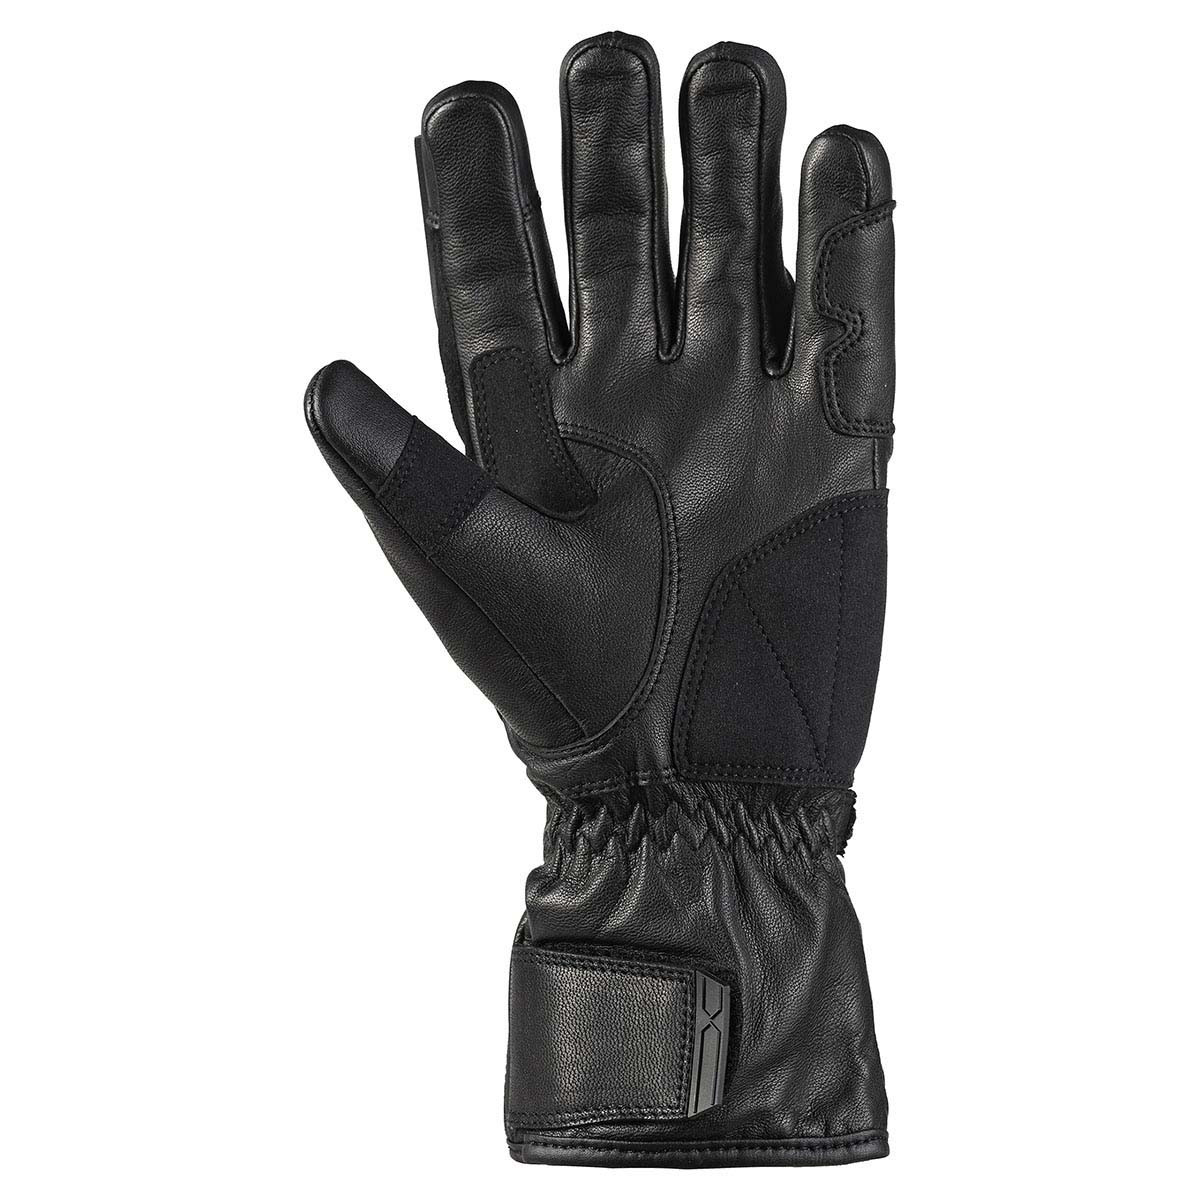 COMFORT ST LT WINTER GLOVE